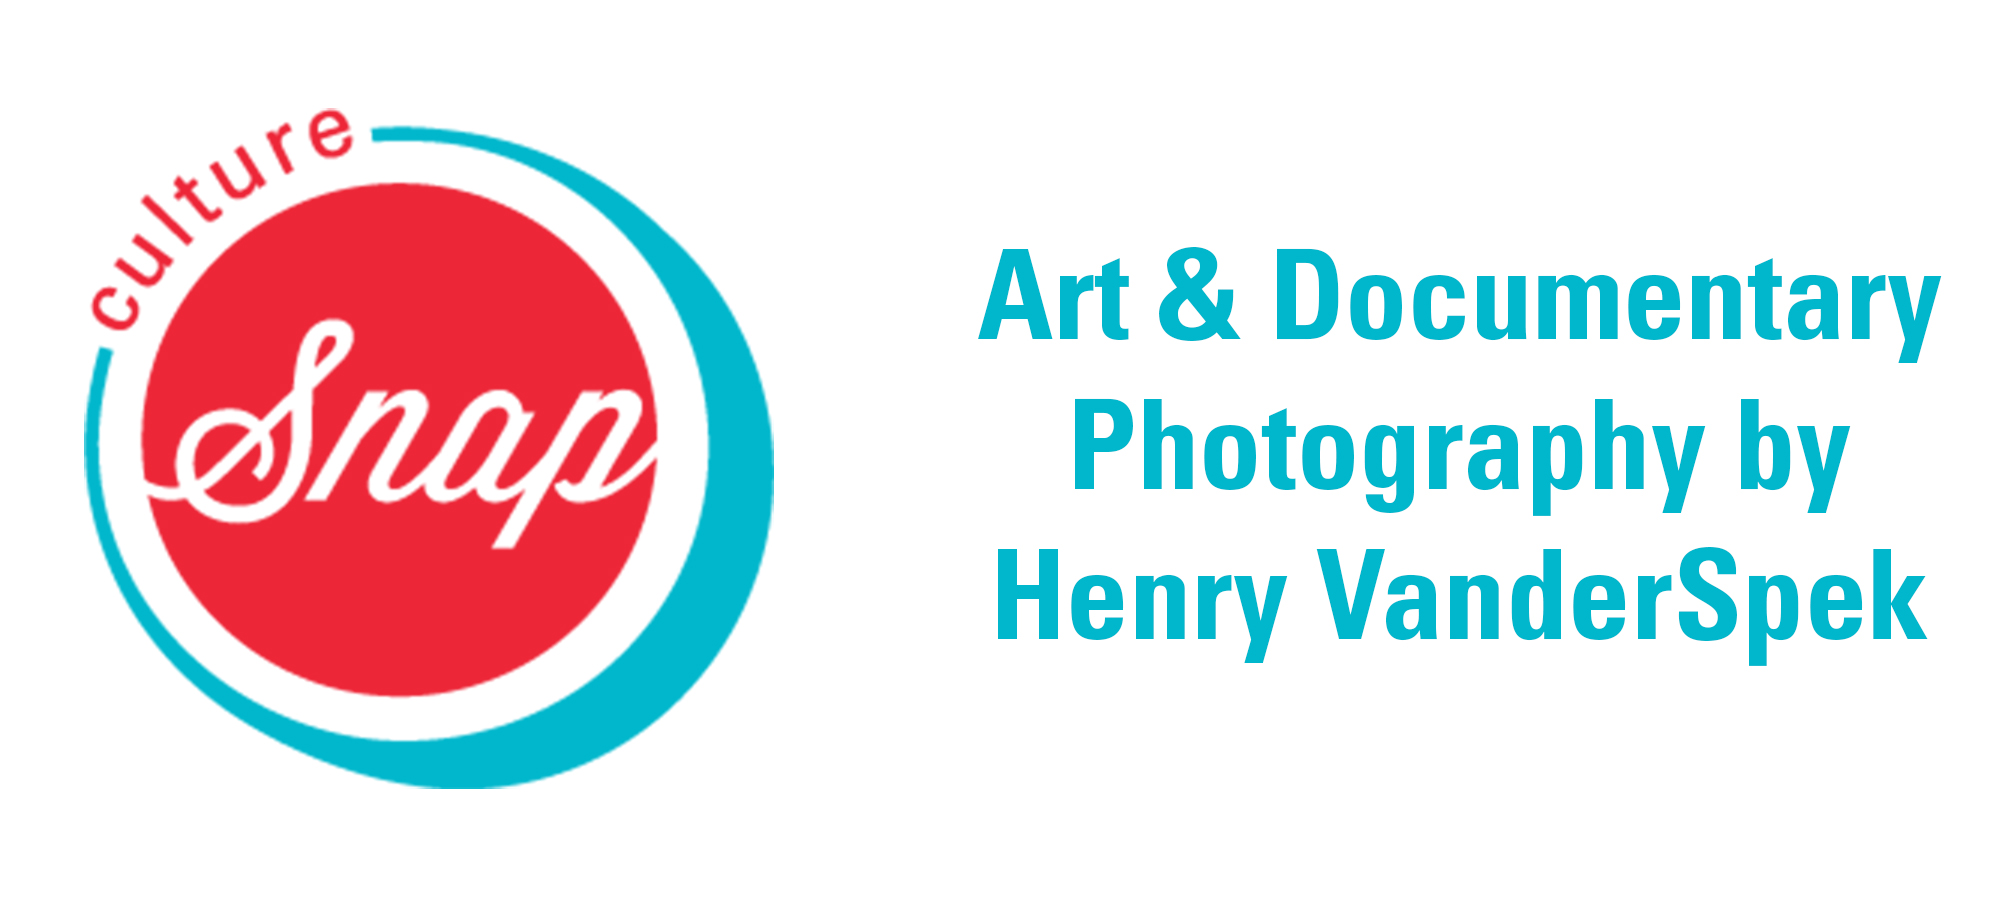 Culture Snap - Award-Winning Photography by Henry VanderSpek